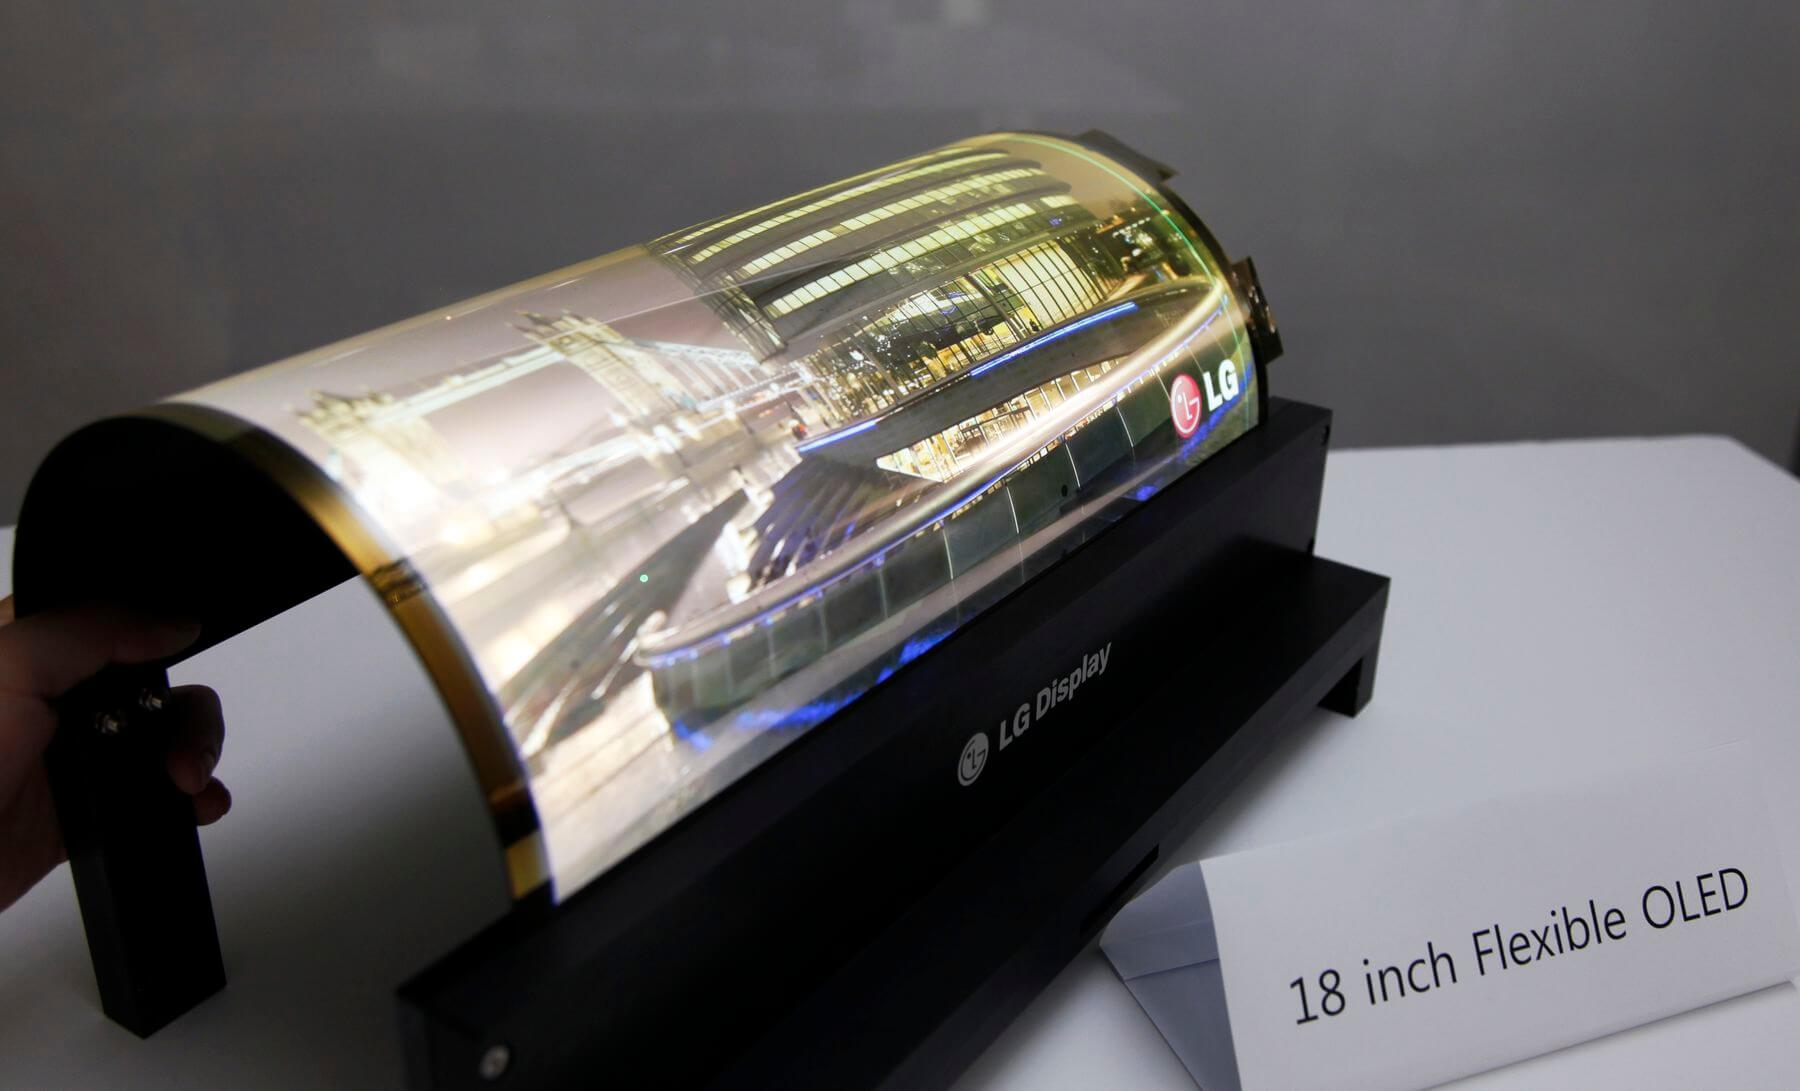 LG Display - Flexible